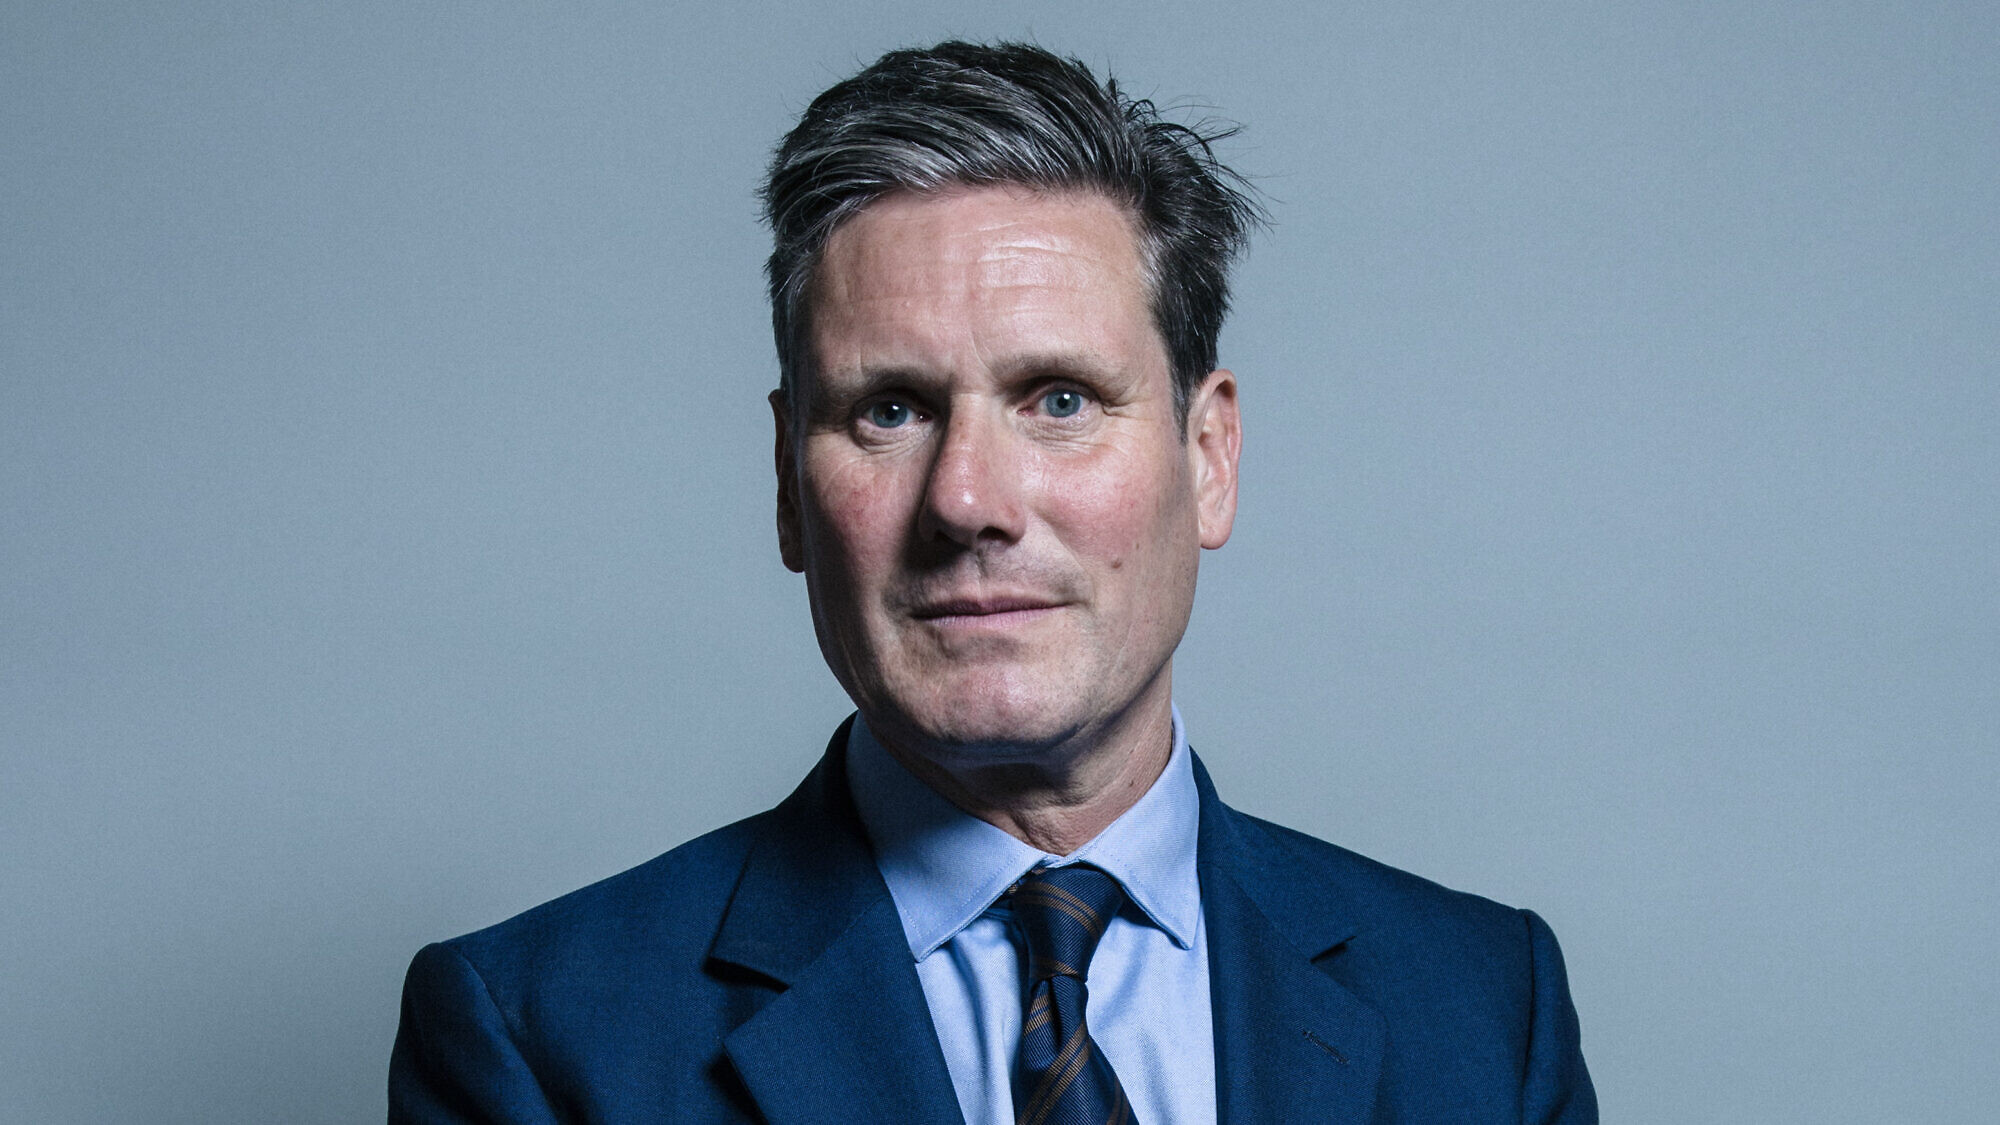 American Jewish Congress Congratulates New Labour Party Leader Keir Starmer